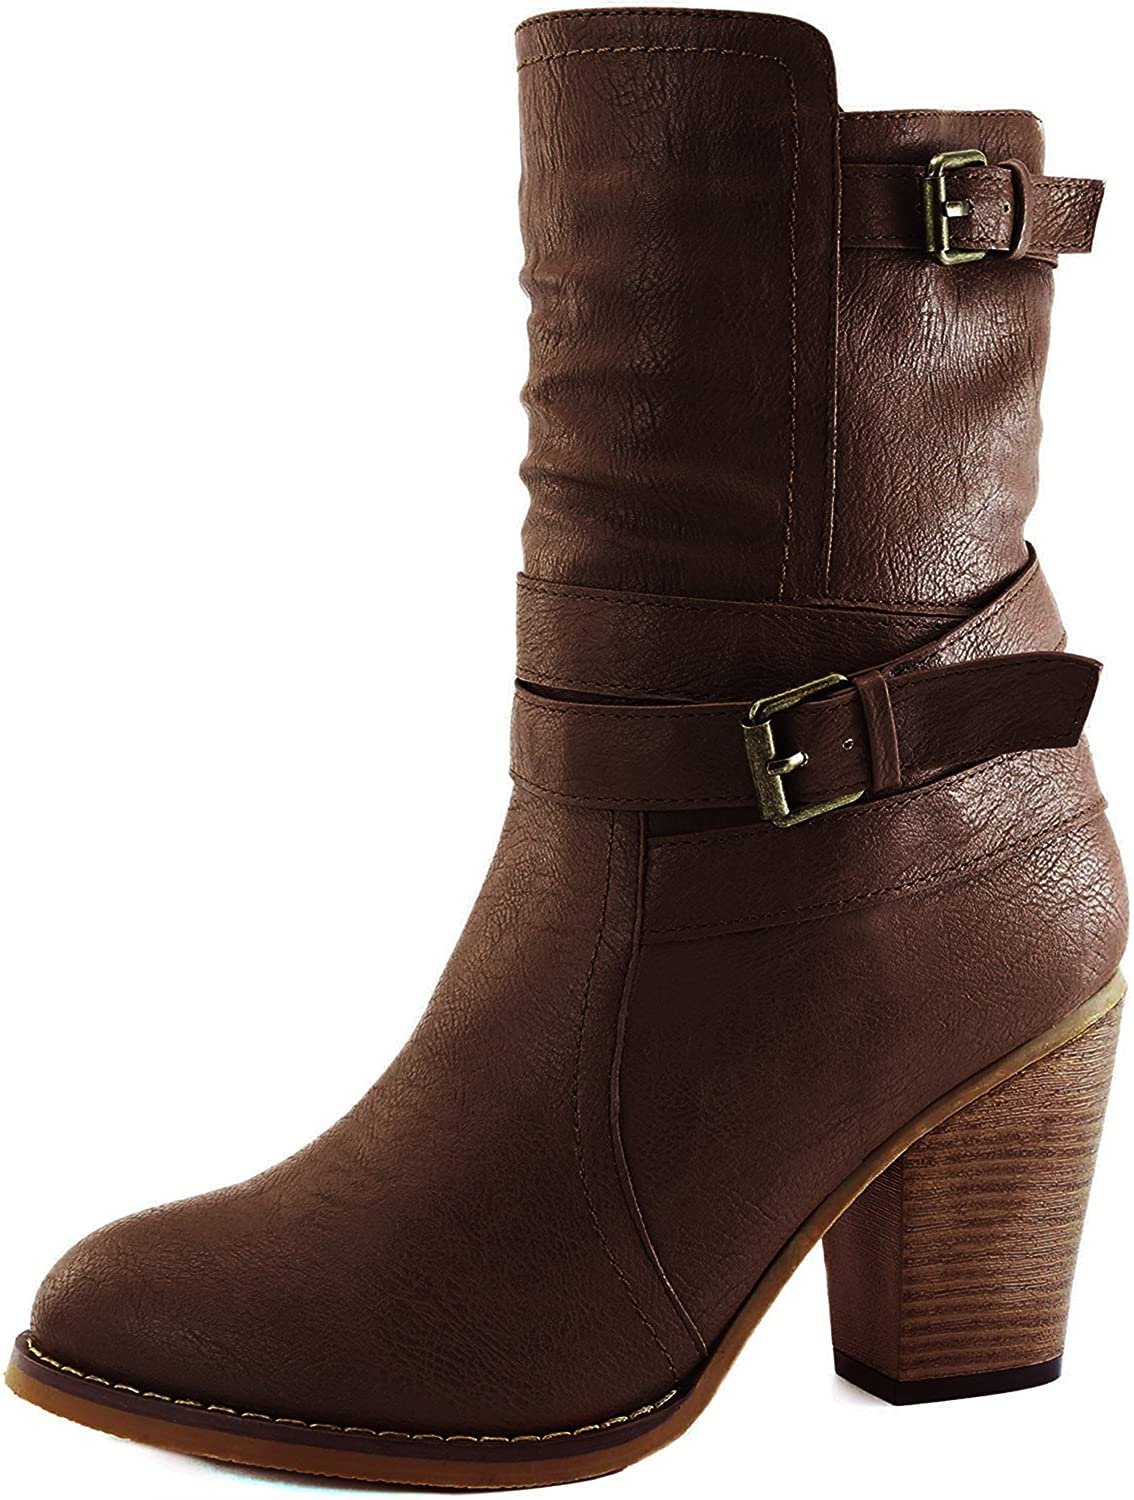 Dailyshoes Women's Western Cowboy Strappy Buckle Chunky Ankle High Heel Boot